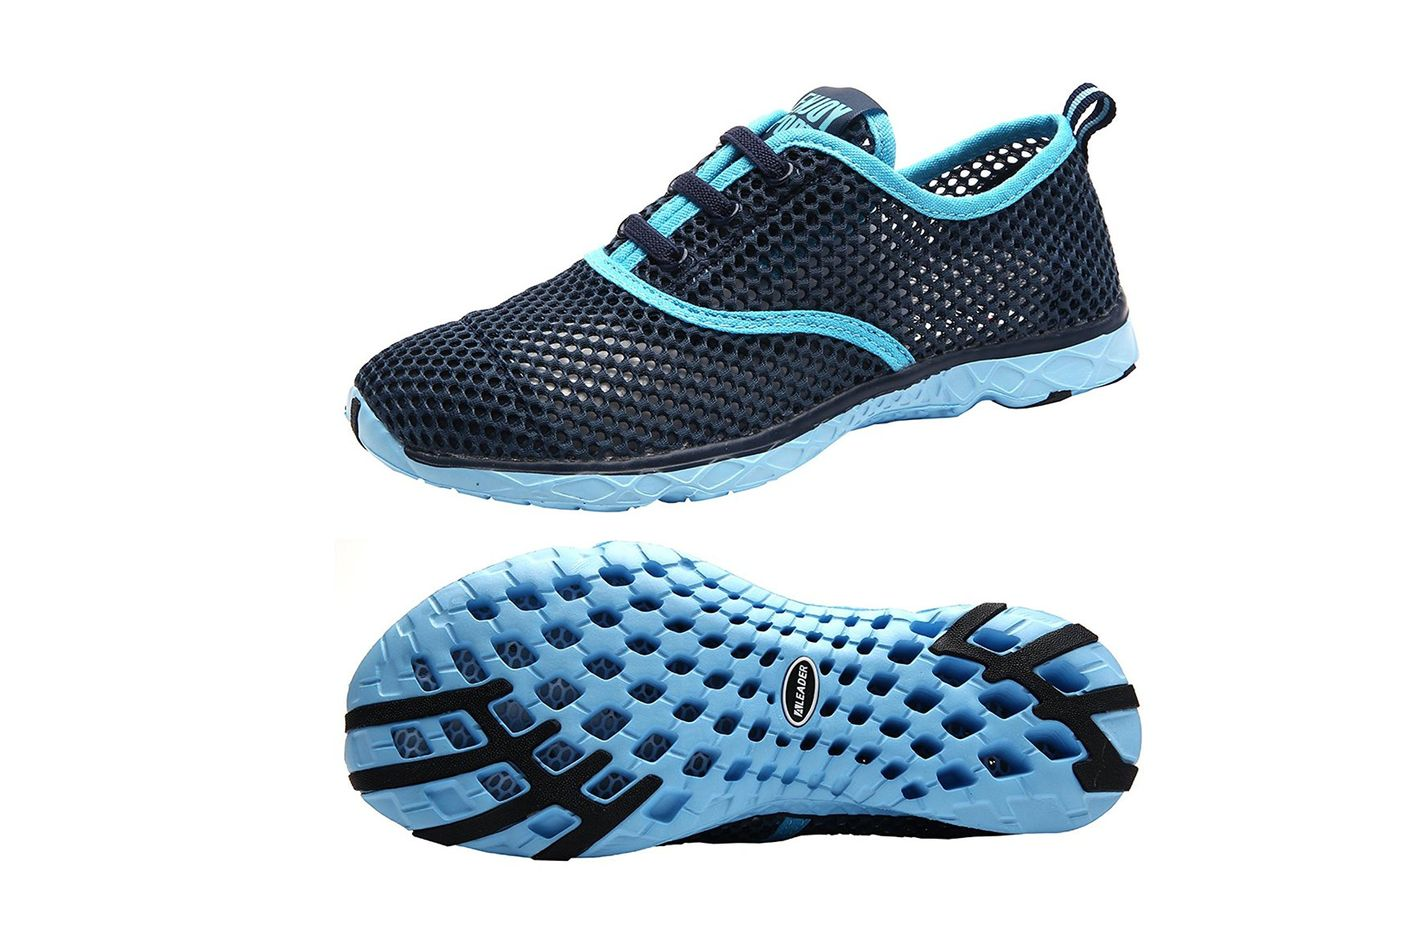 4b0b88ea0 Aleader Women s Quick Drying Aqua Water Shoes at Amazon